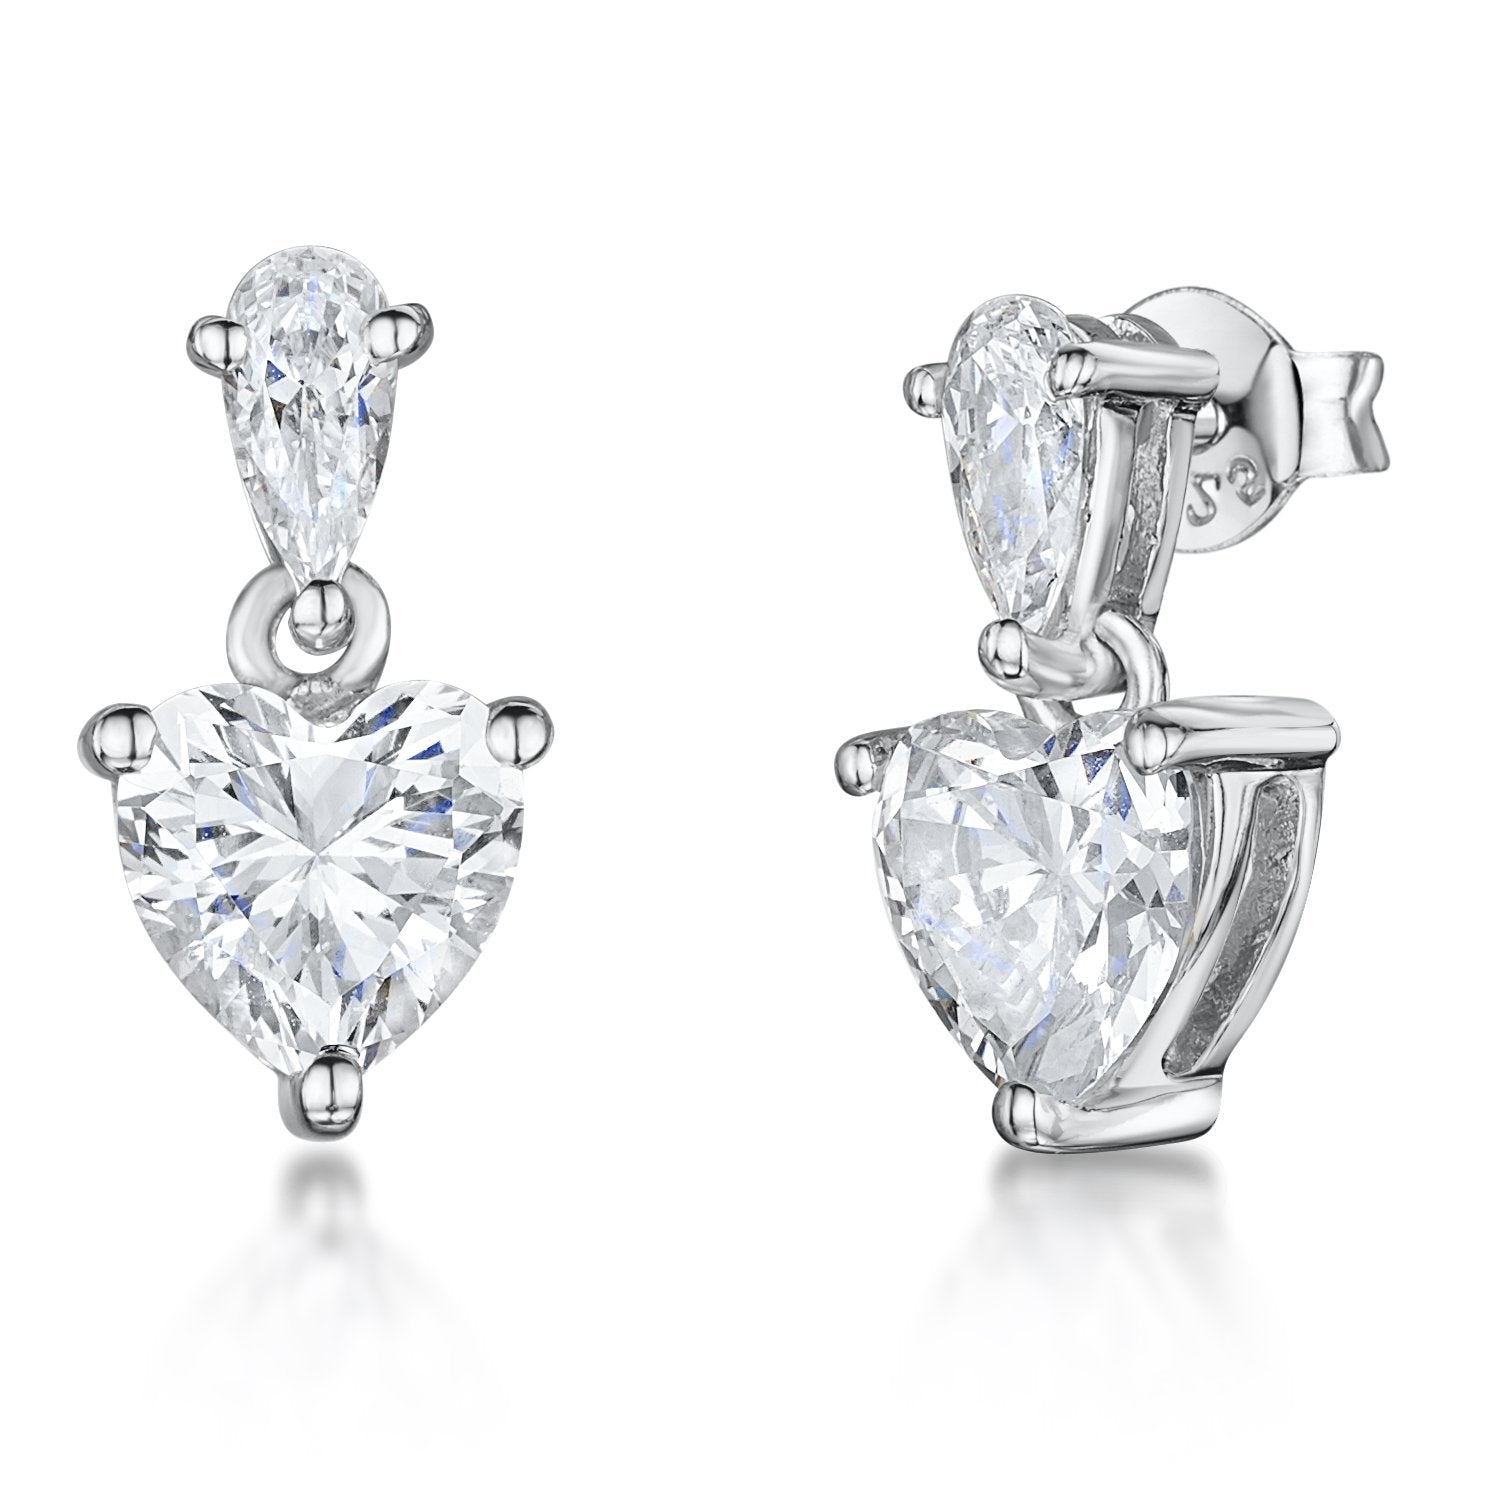 Sterling Silver Heart Drop Earrings -Set With A Central Cubic Zirconia Heart and Pear Shape Bale - JOOLS By Jenny Brown